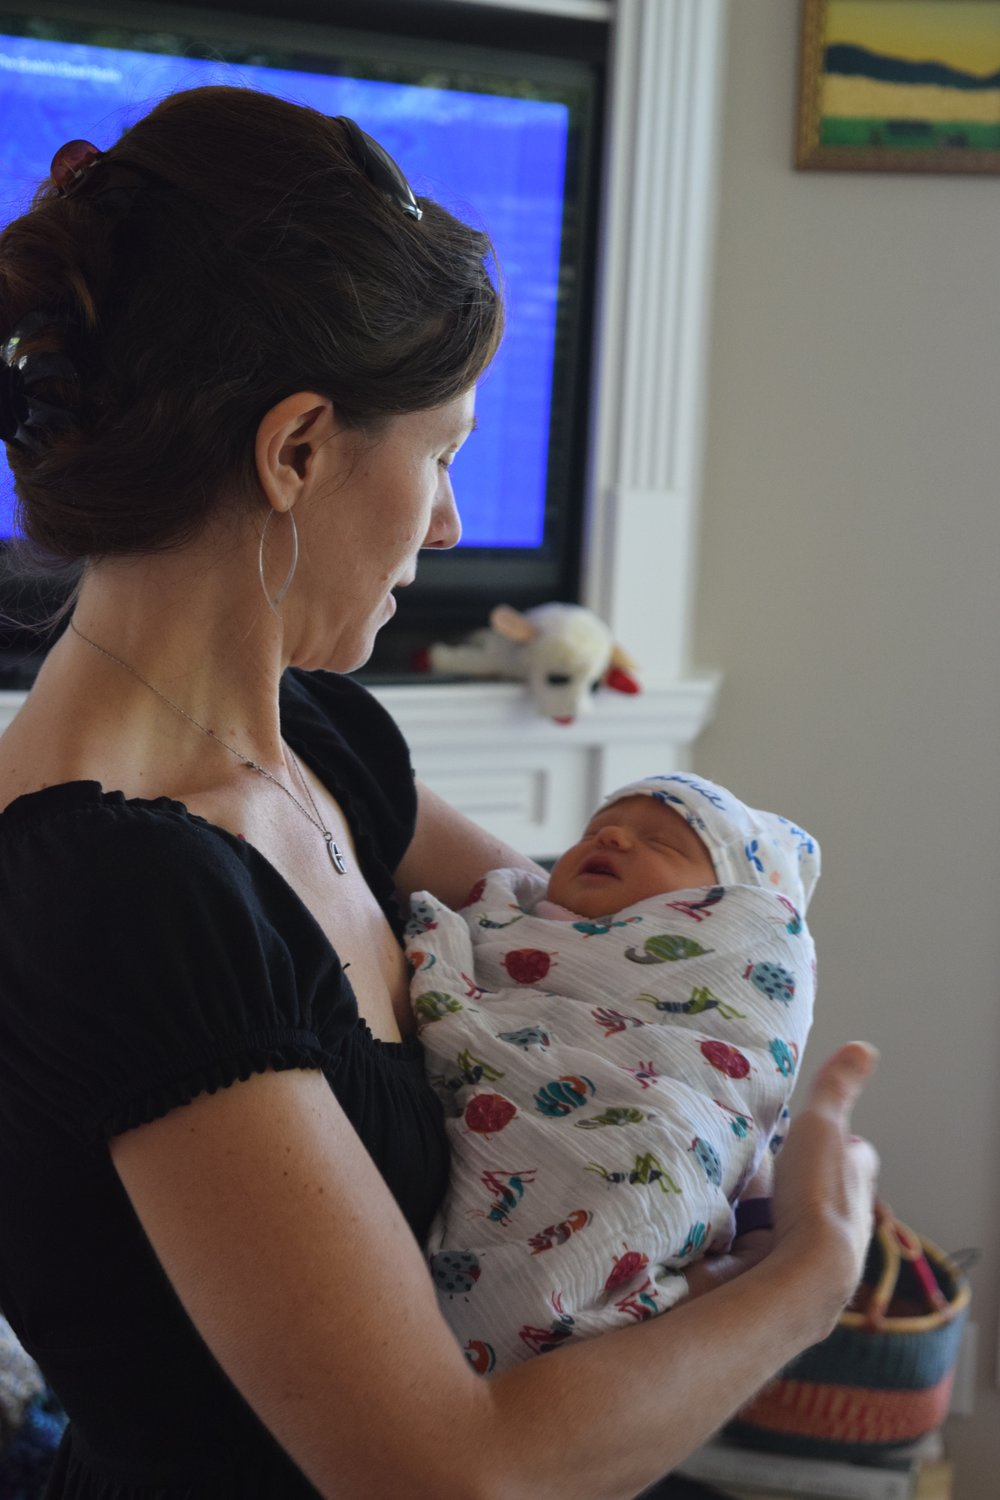 Allison Rollans with newborn baby Cora, 24 hours old.